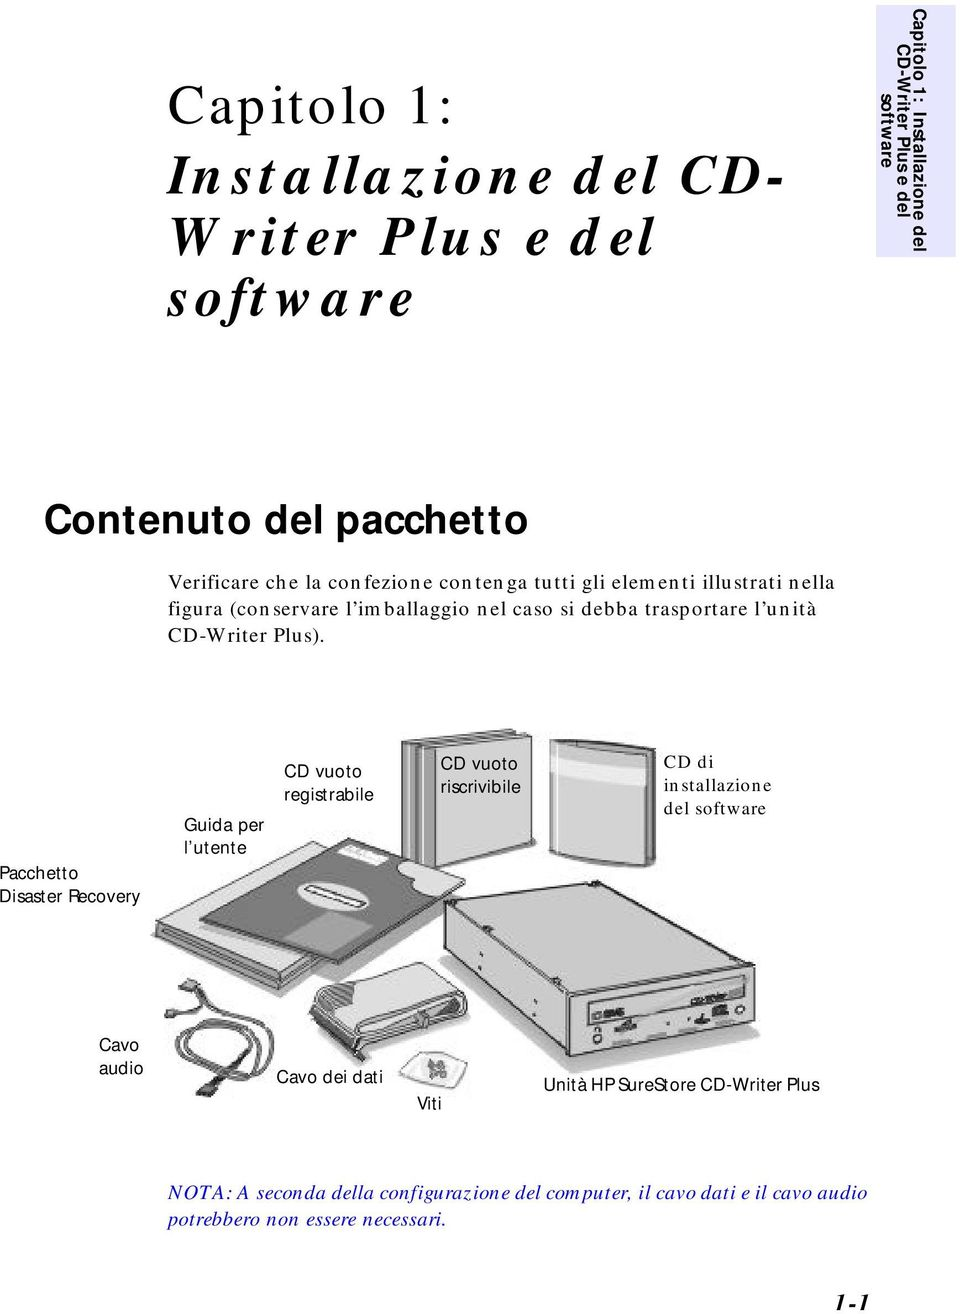 CD-Writer Plus).